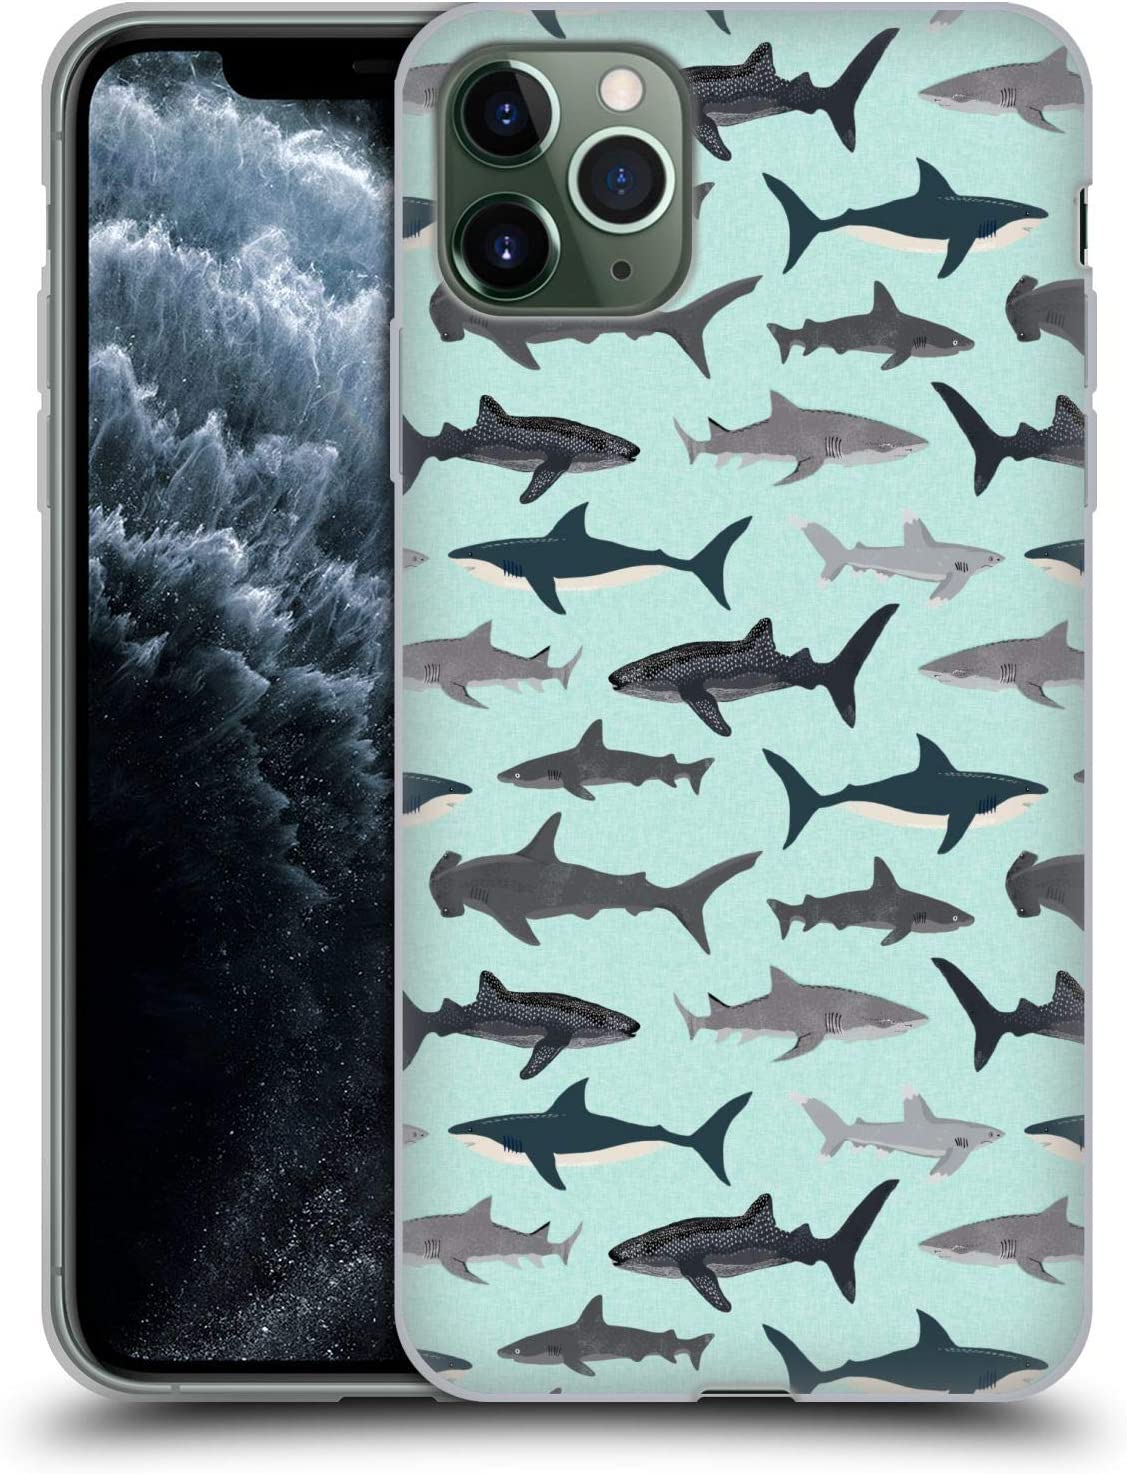 Head Case Designs Officially Licensed by Andrea Lauren Design Sharks Sea Life Soft Gel Case Compatible with Apple iPhone 11 Pro Max